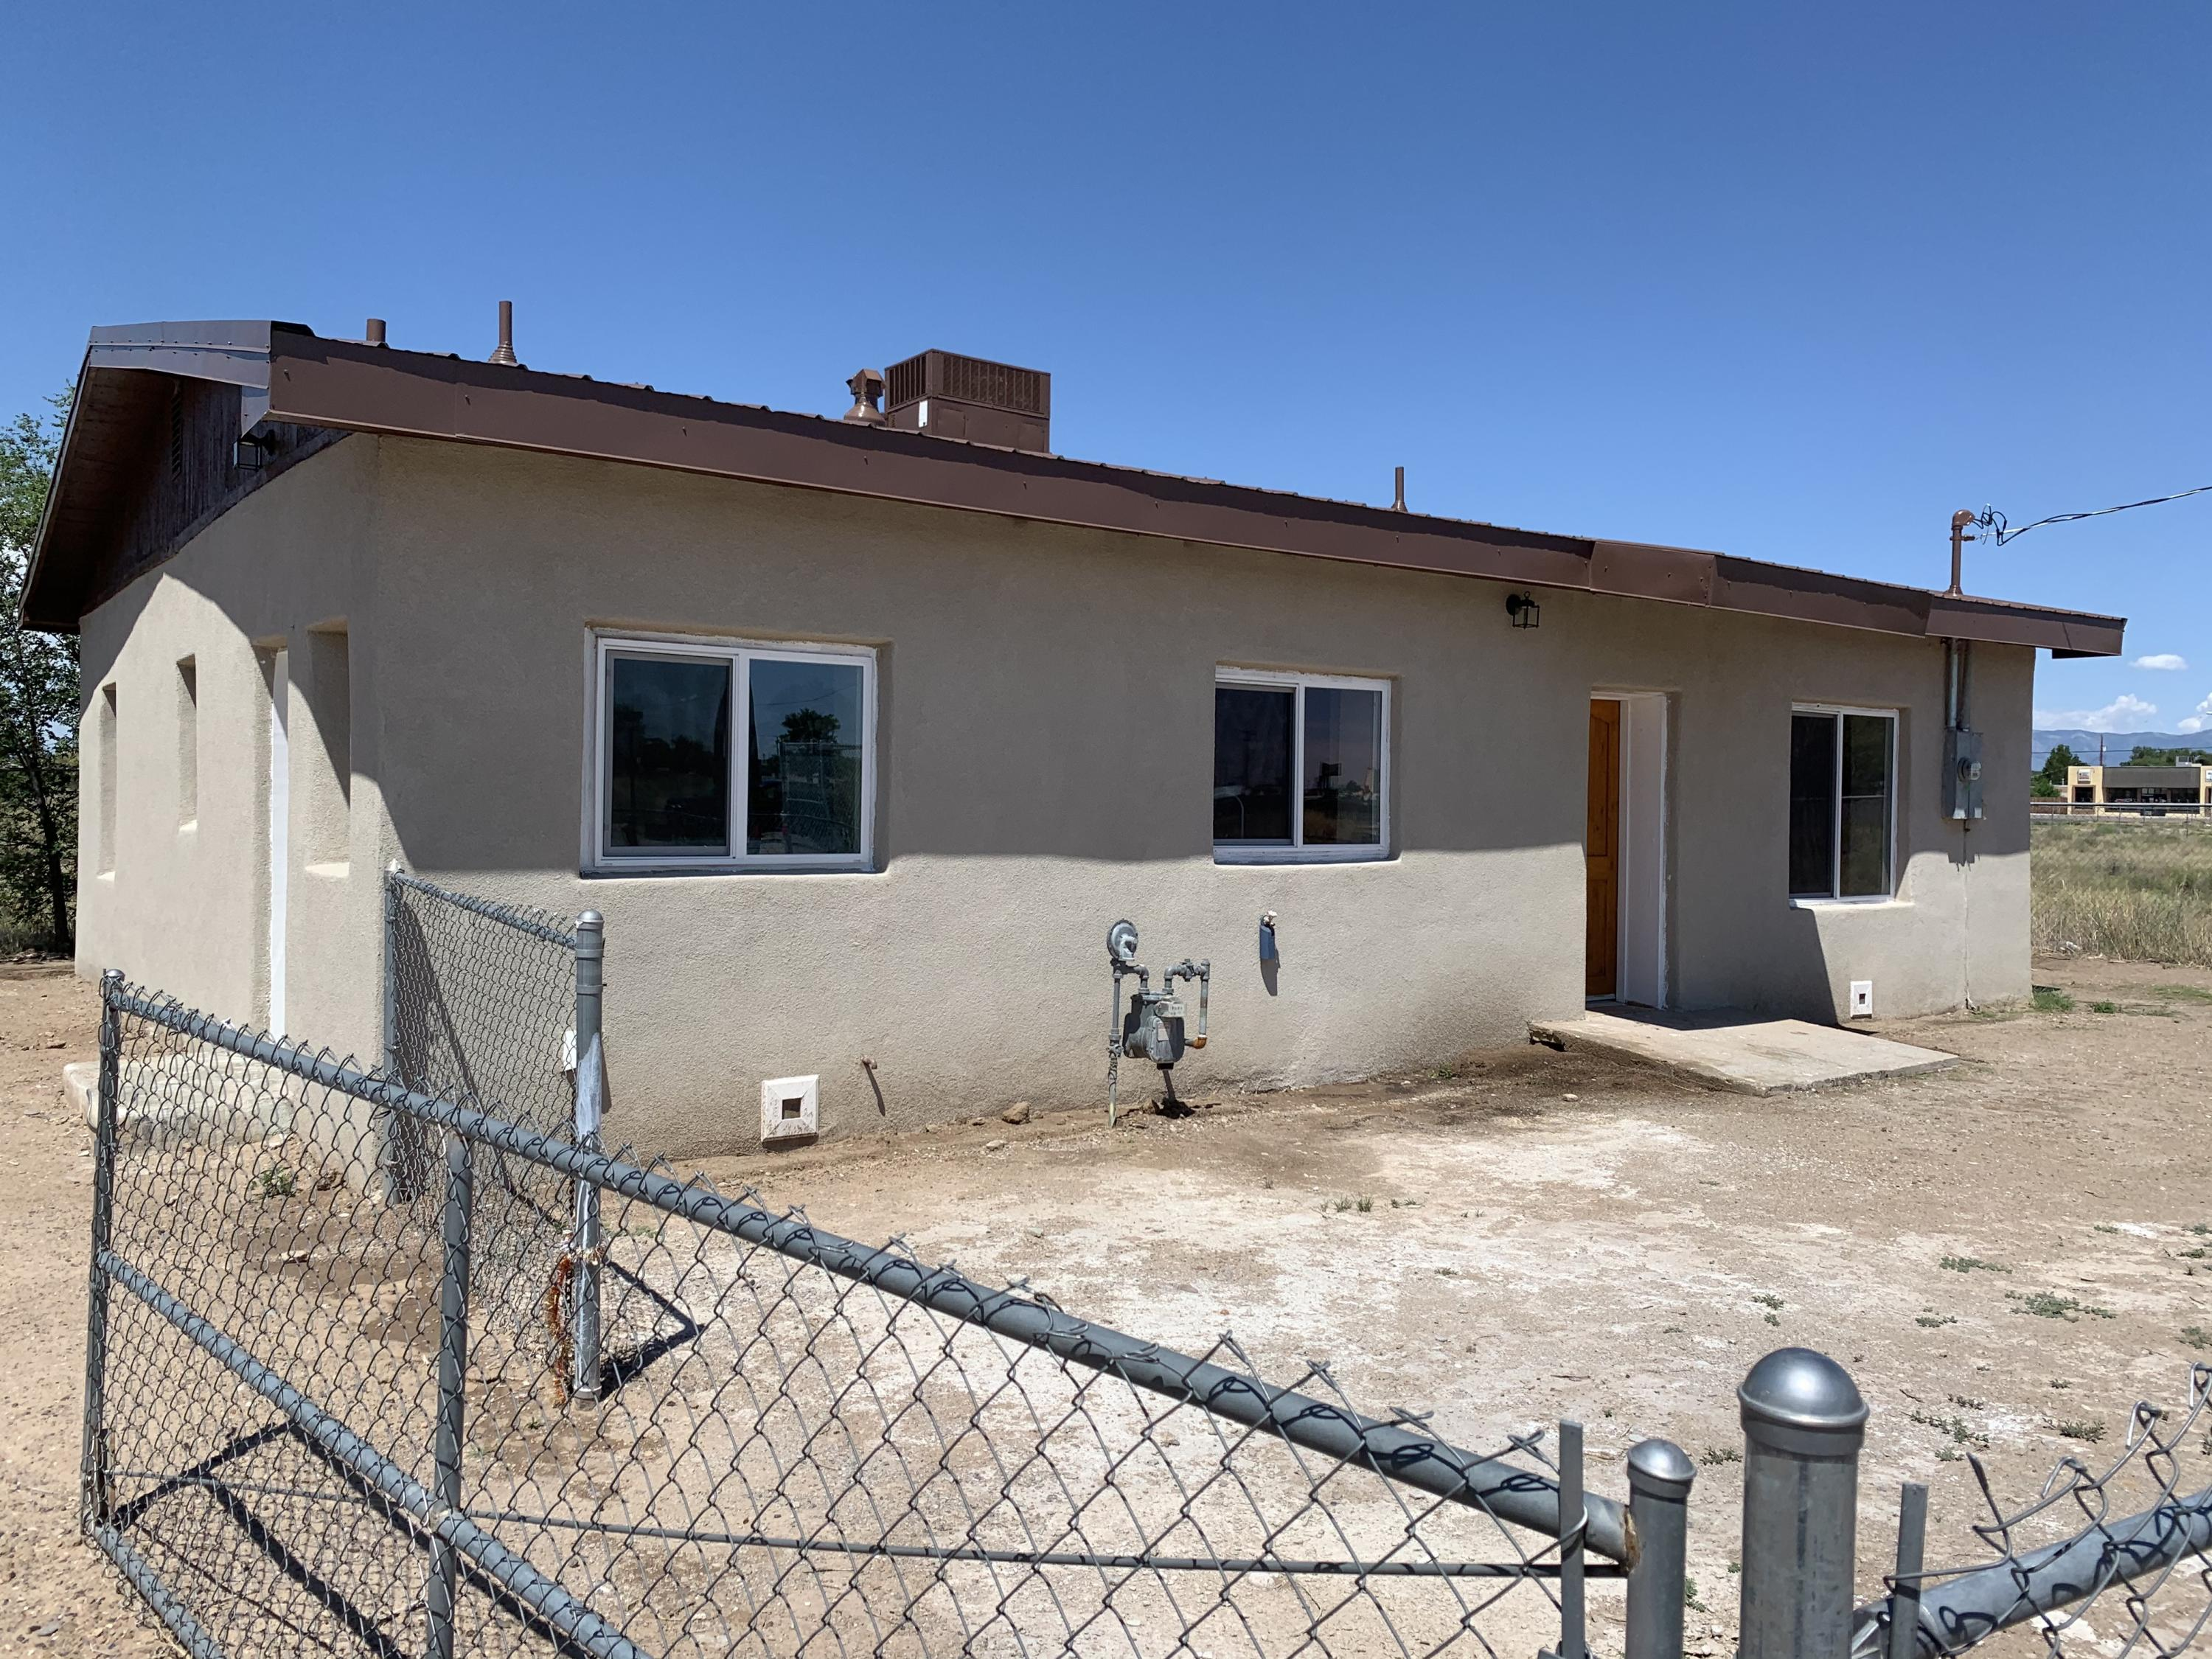 Quaint remodeled adobe home in the heart of Belen.  Easy access everywhere, fully fenced yard.  This home is ready to move in.  It has great natural lighting and an open floor plan.  Come see this home today